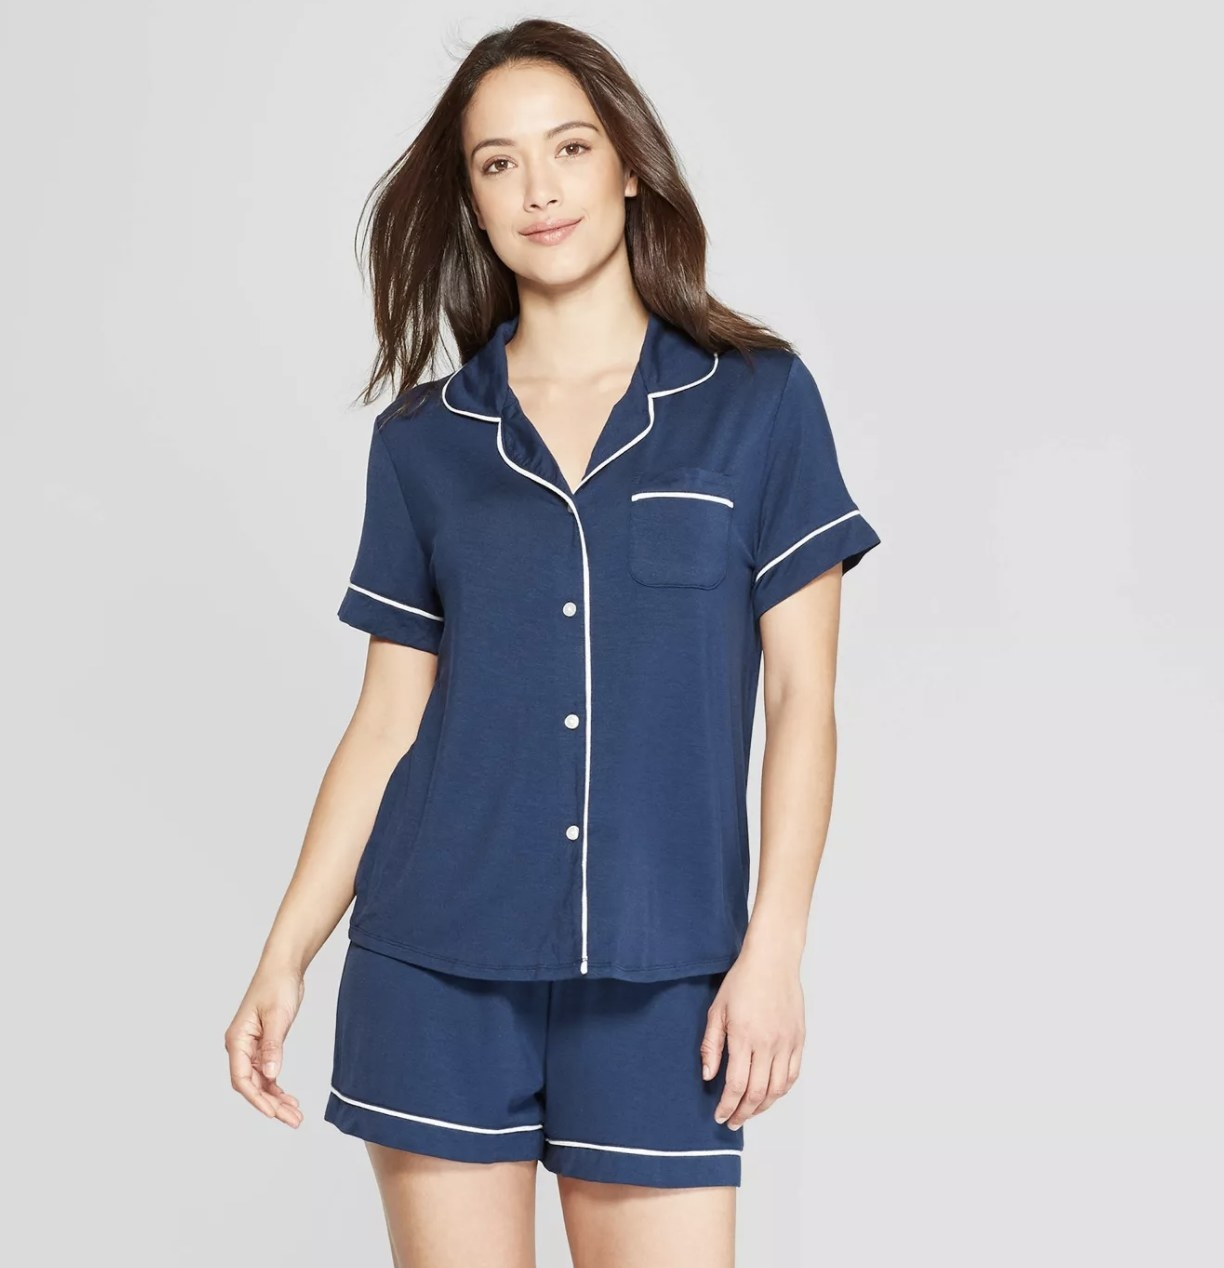 A model wearing a set of short sleeve and short shot pajamas in blue with white piping